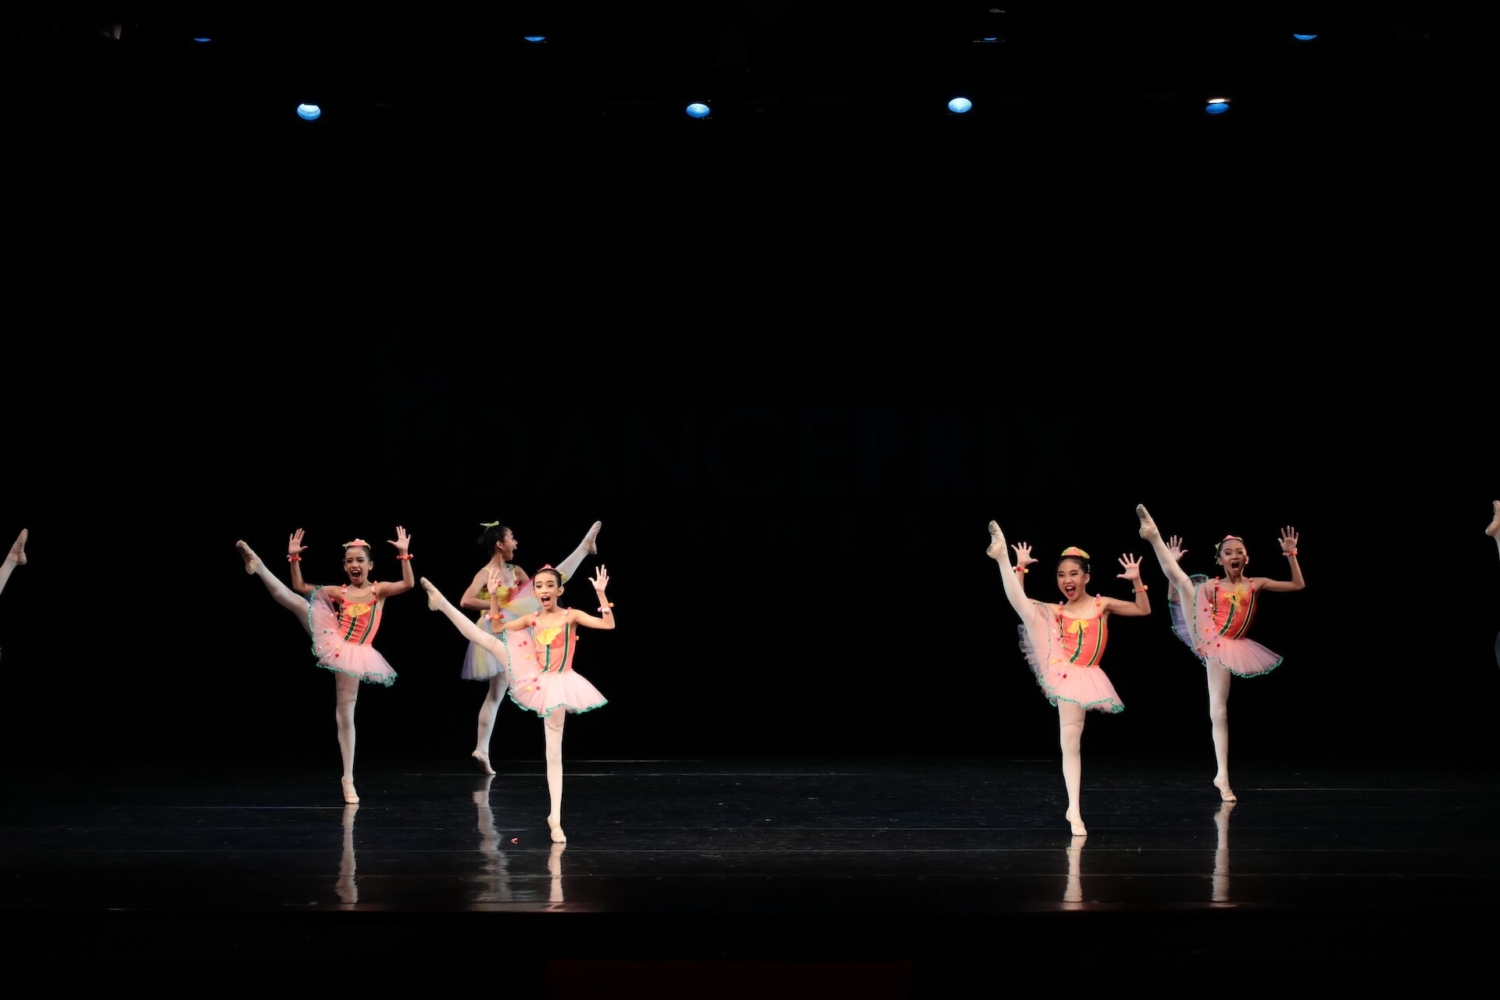 Dance Prix Indonesia 2019 – Ballet Group Candidate, Playful Princesses